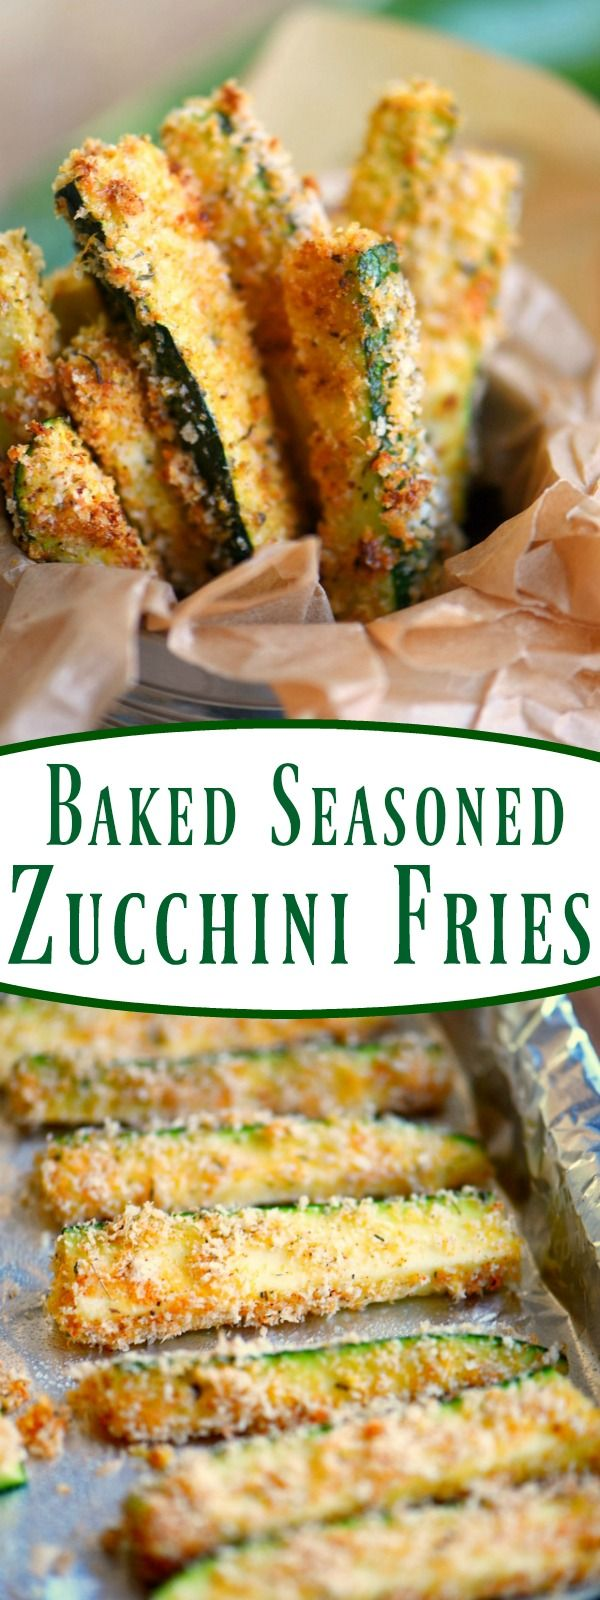 Your new favorite way to eat zucchini! These Baked Seasoned Zucchini Fries are loaded with flavor and baked to a golden crisp! Perfection!